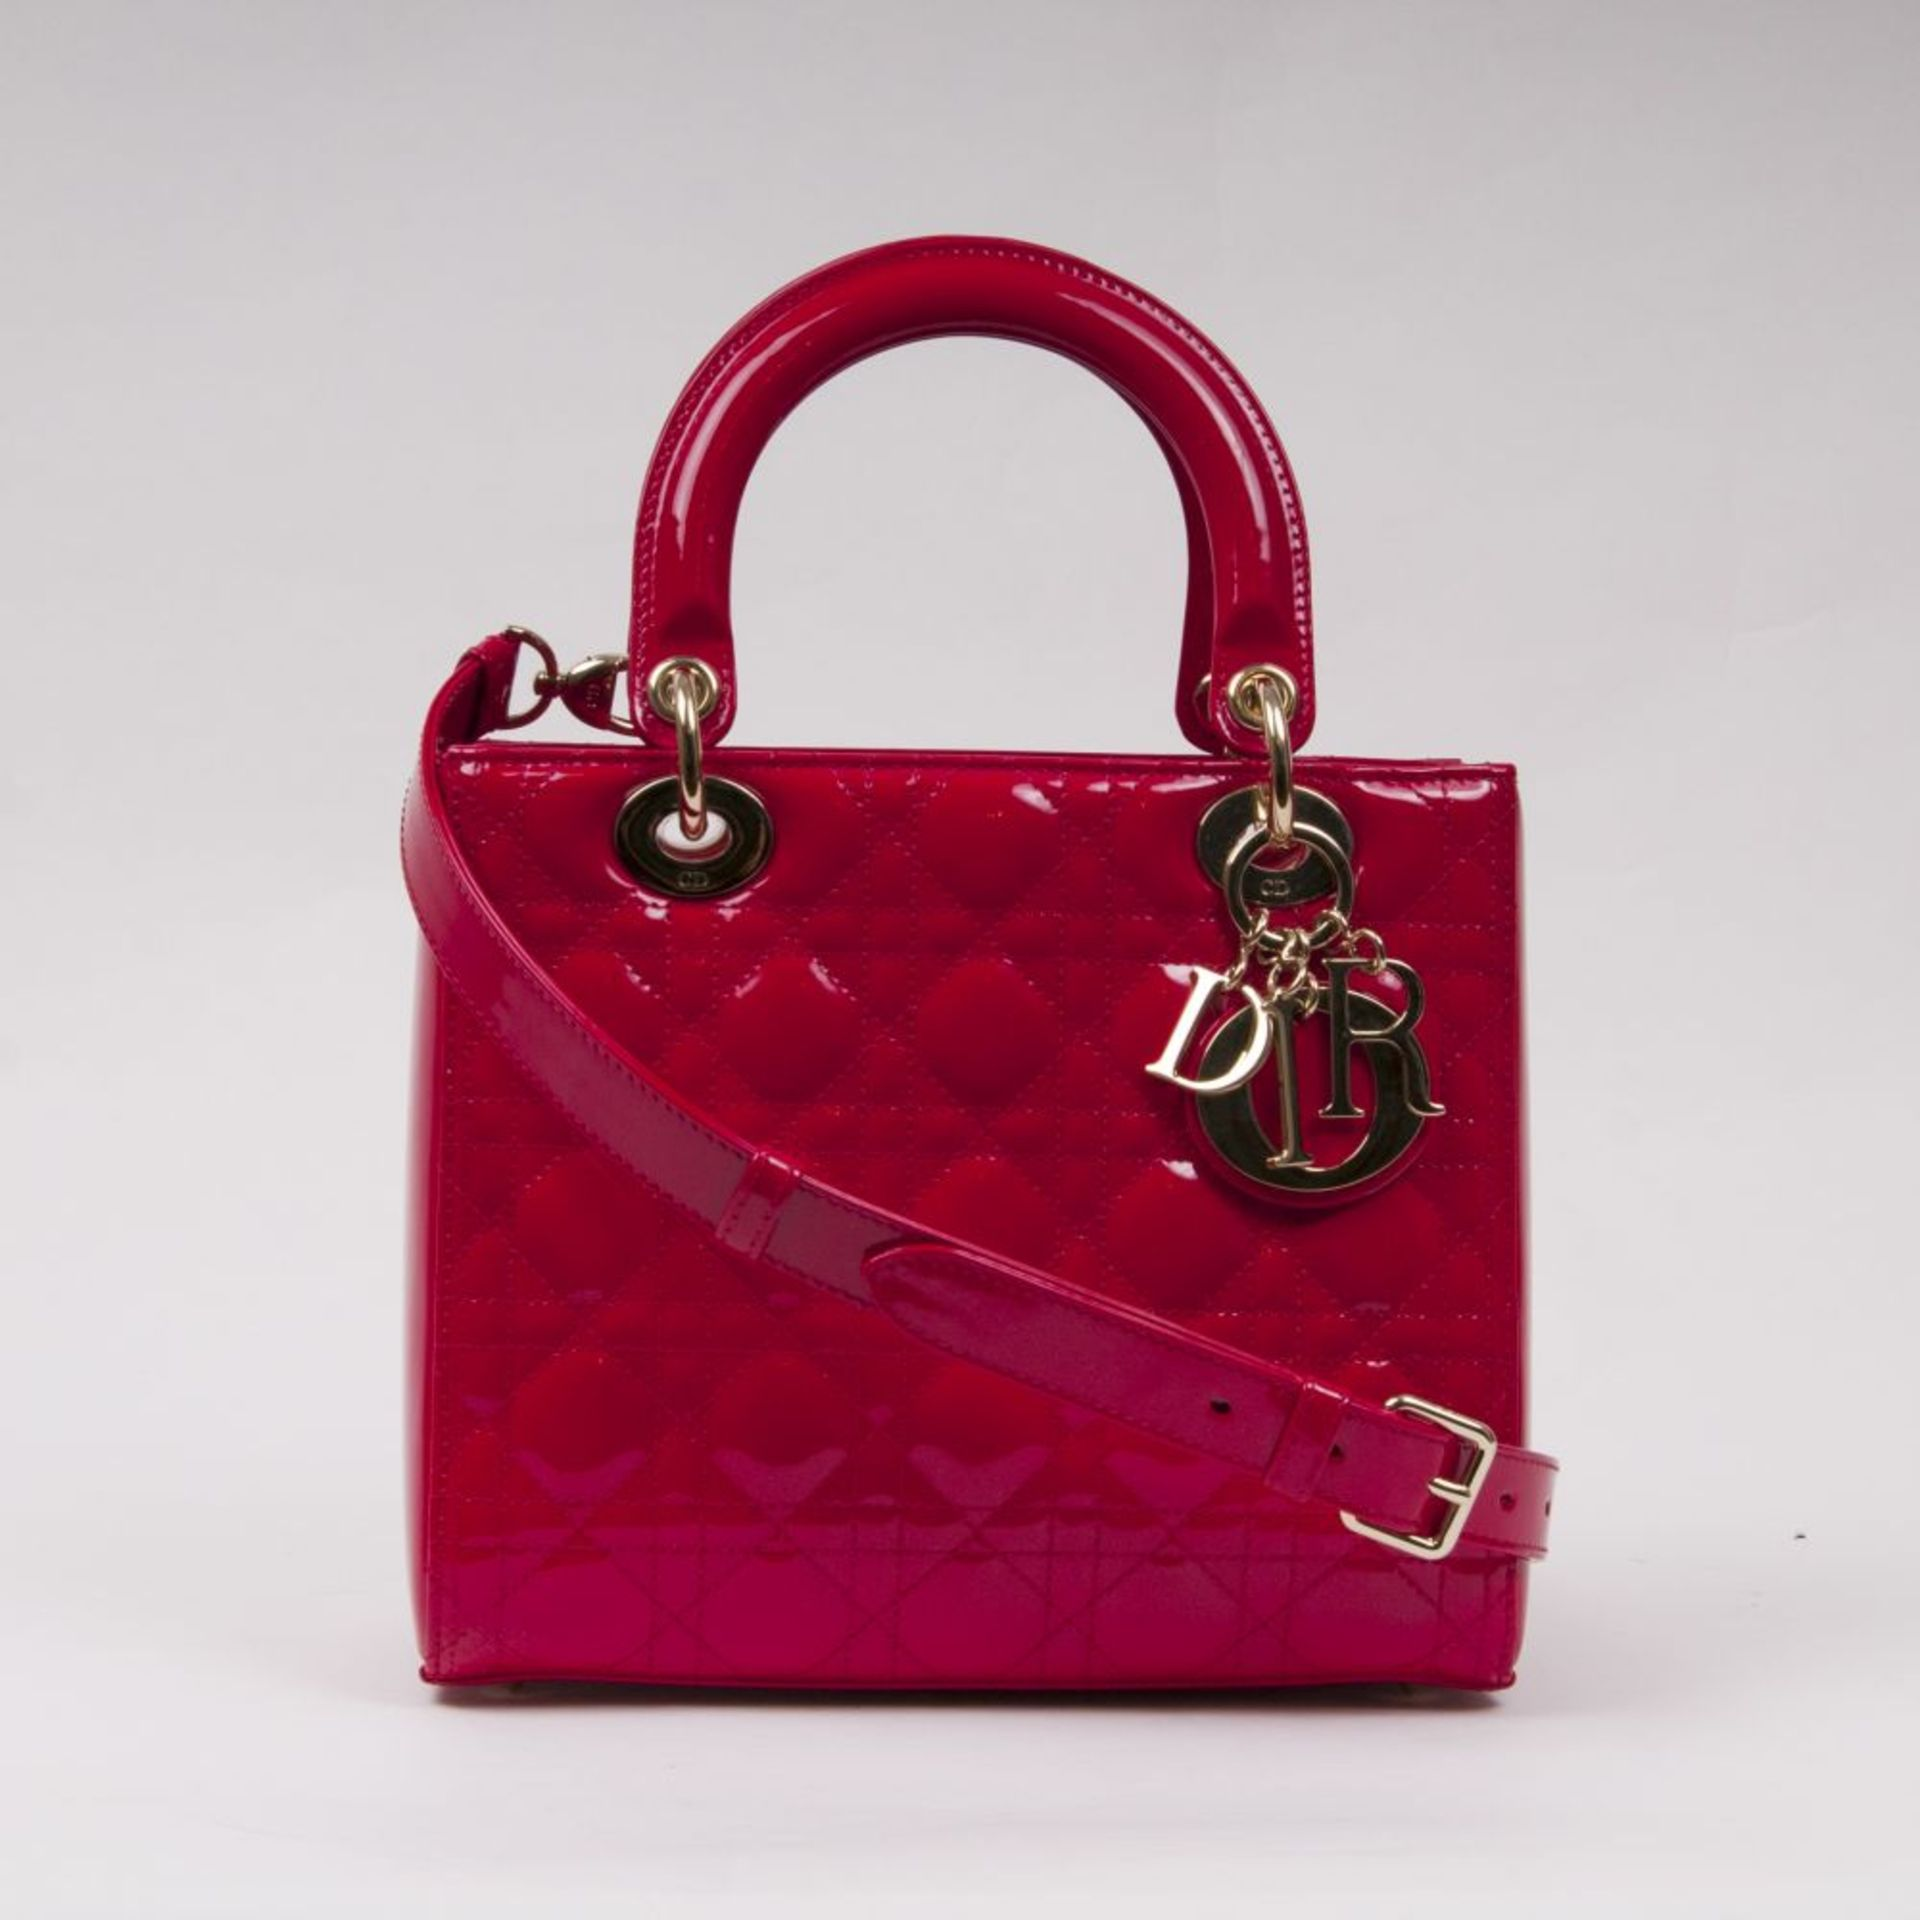 Christian Dior. Lady Dior Bag Kirschrot.